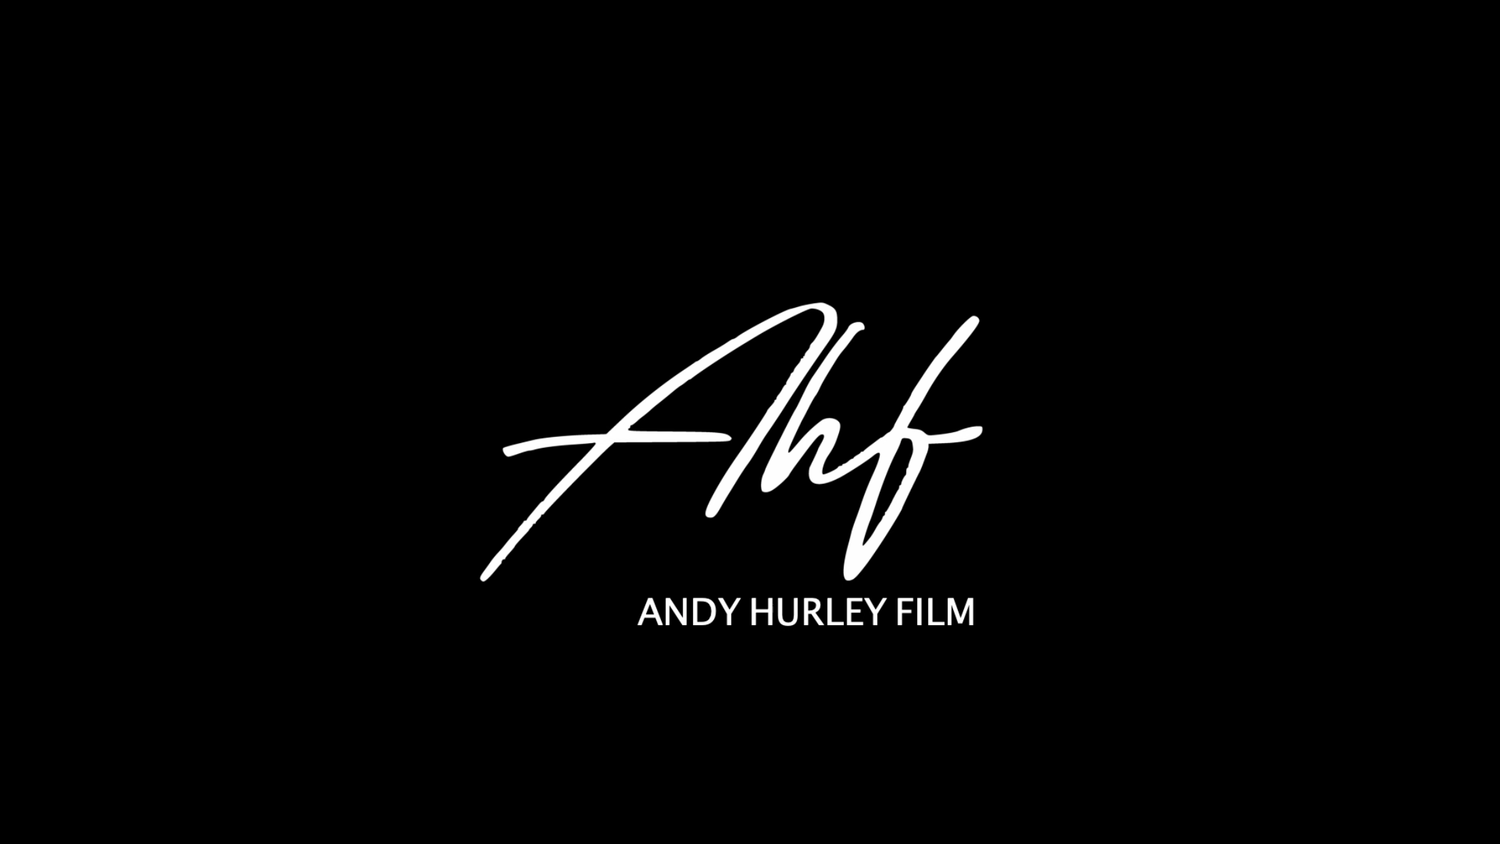 Andy Hurley Film